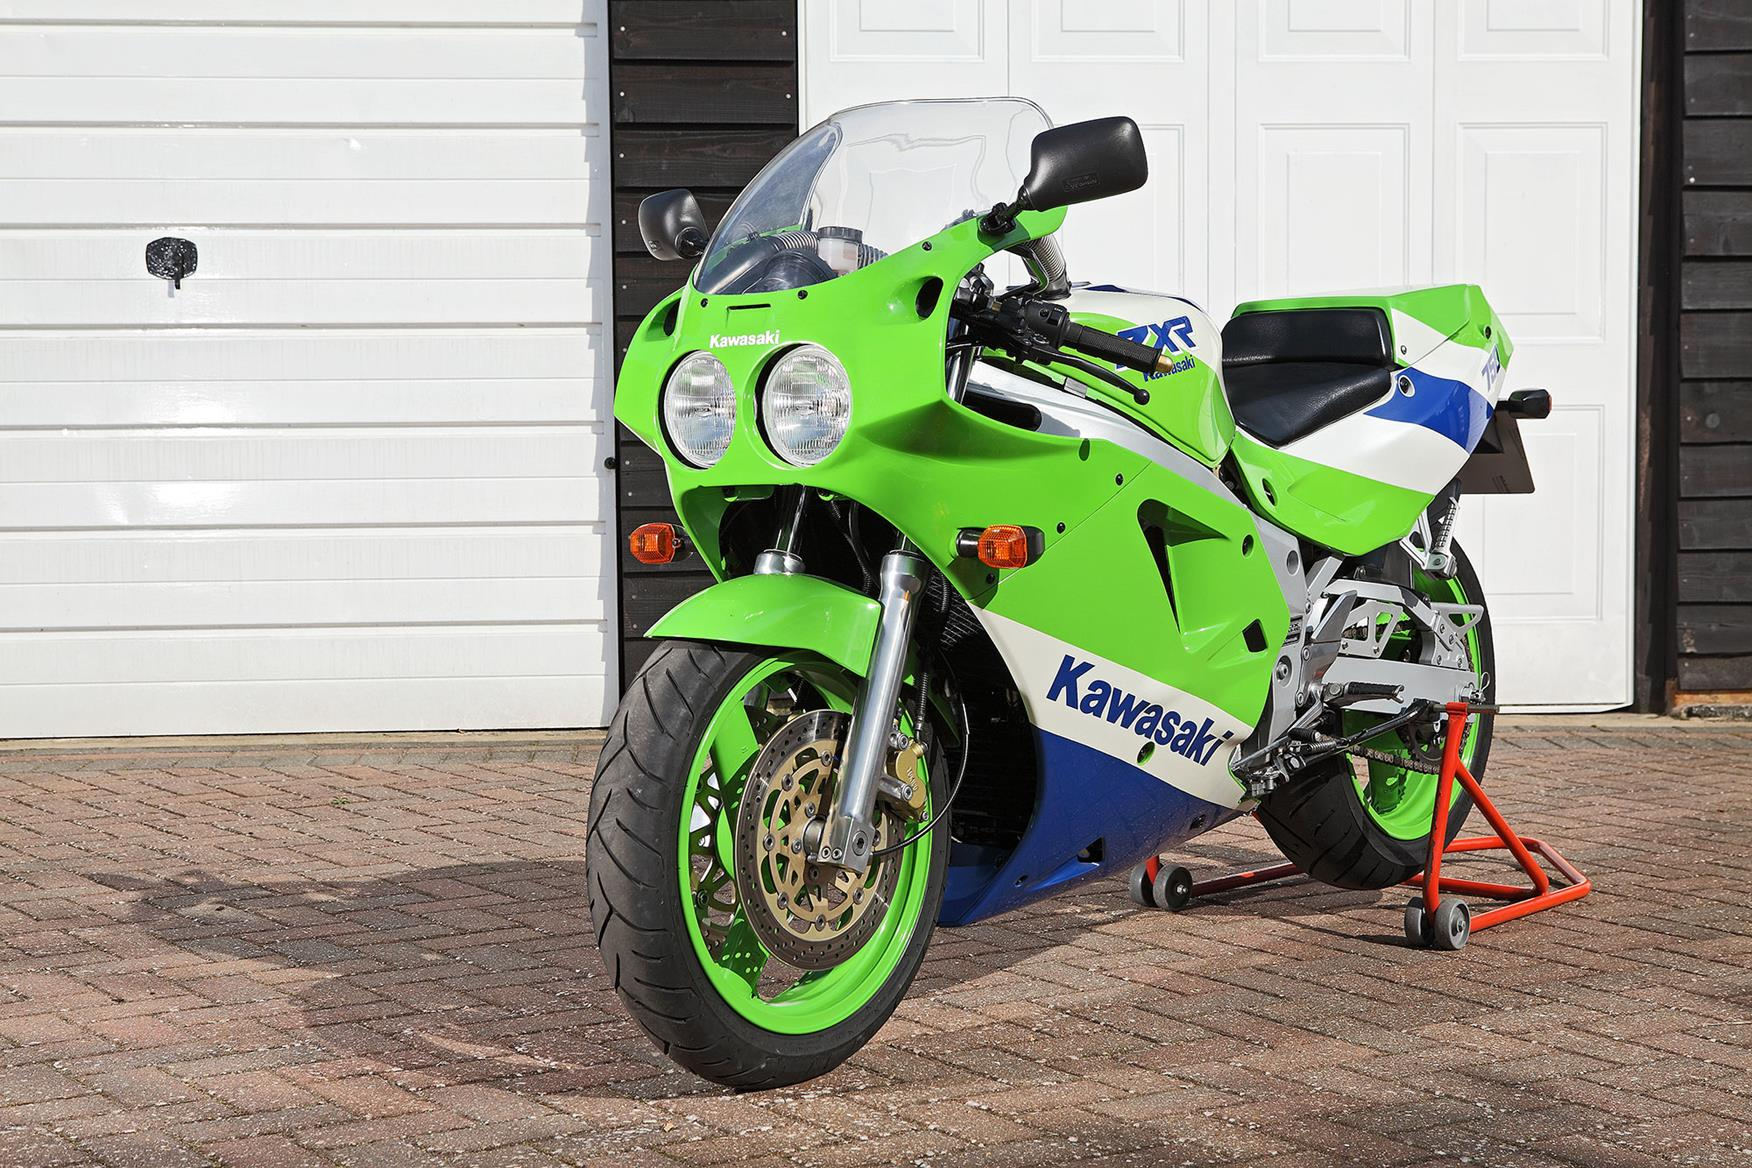 Poll: Which was the greatest late 80s/early 90s Japanese sportsbike?